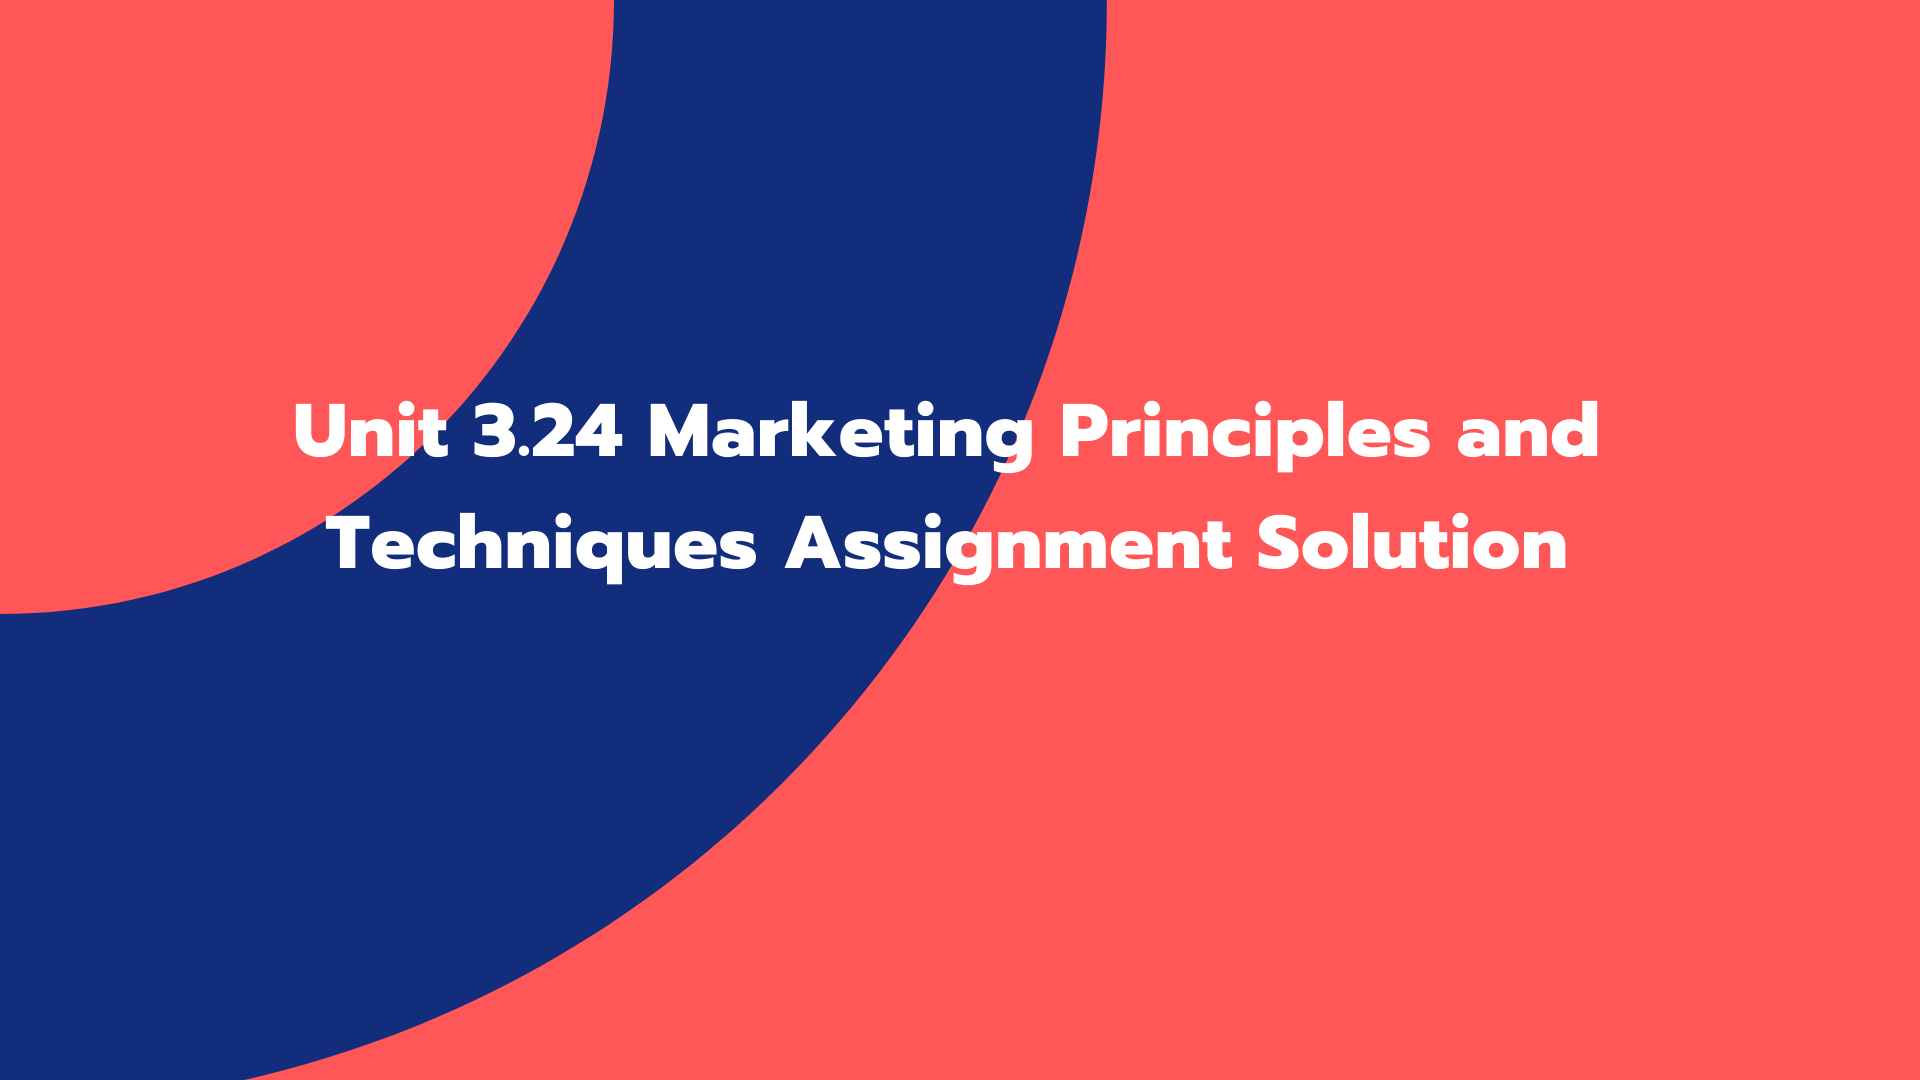 Unit 3.24 Marketing Principles and Techniques Assignment Solution